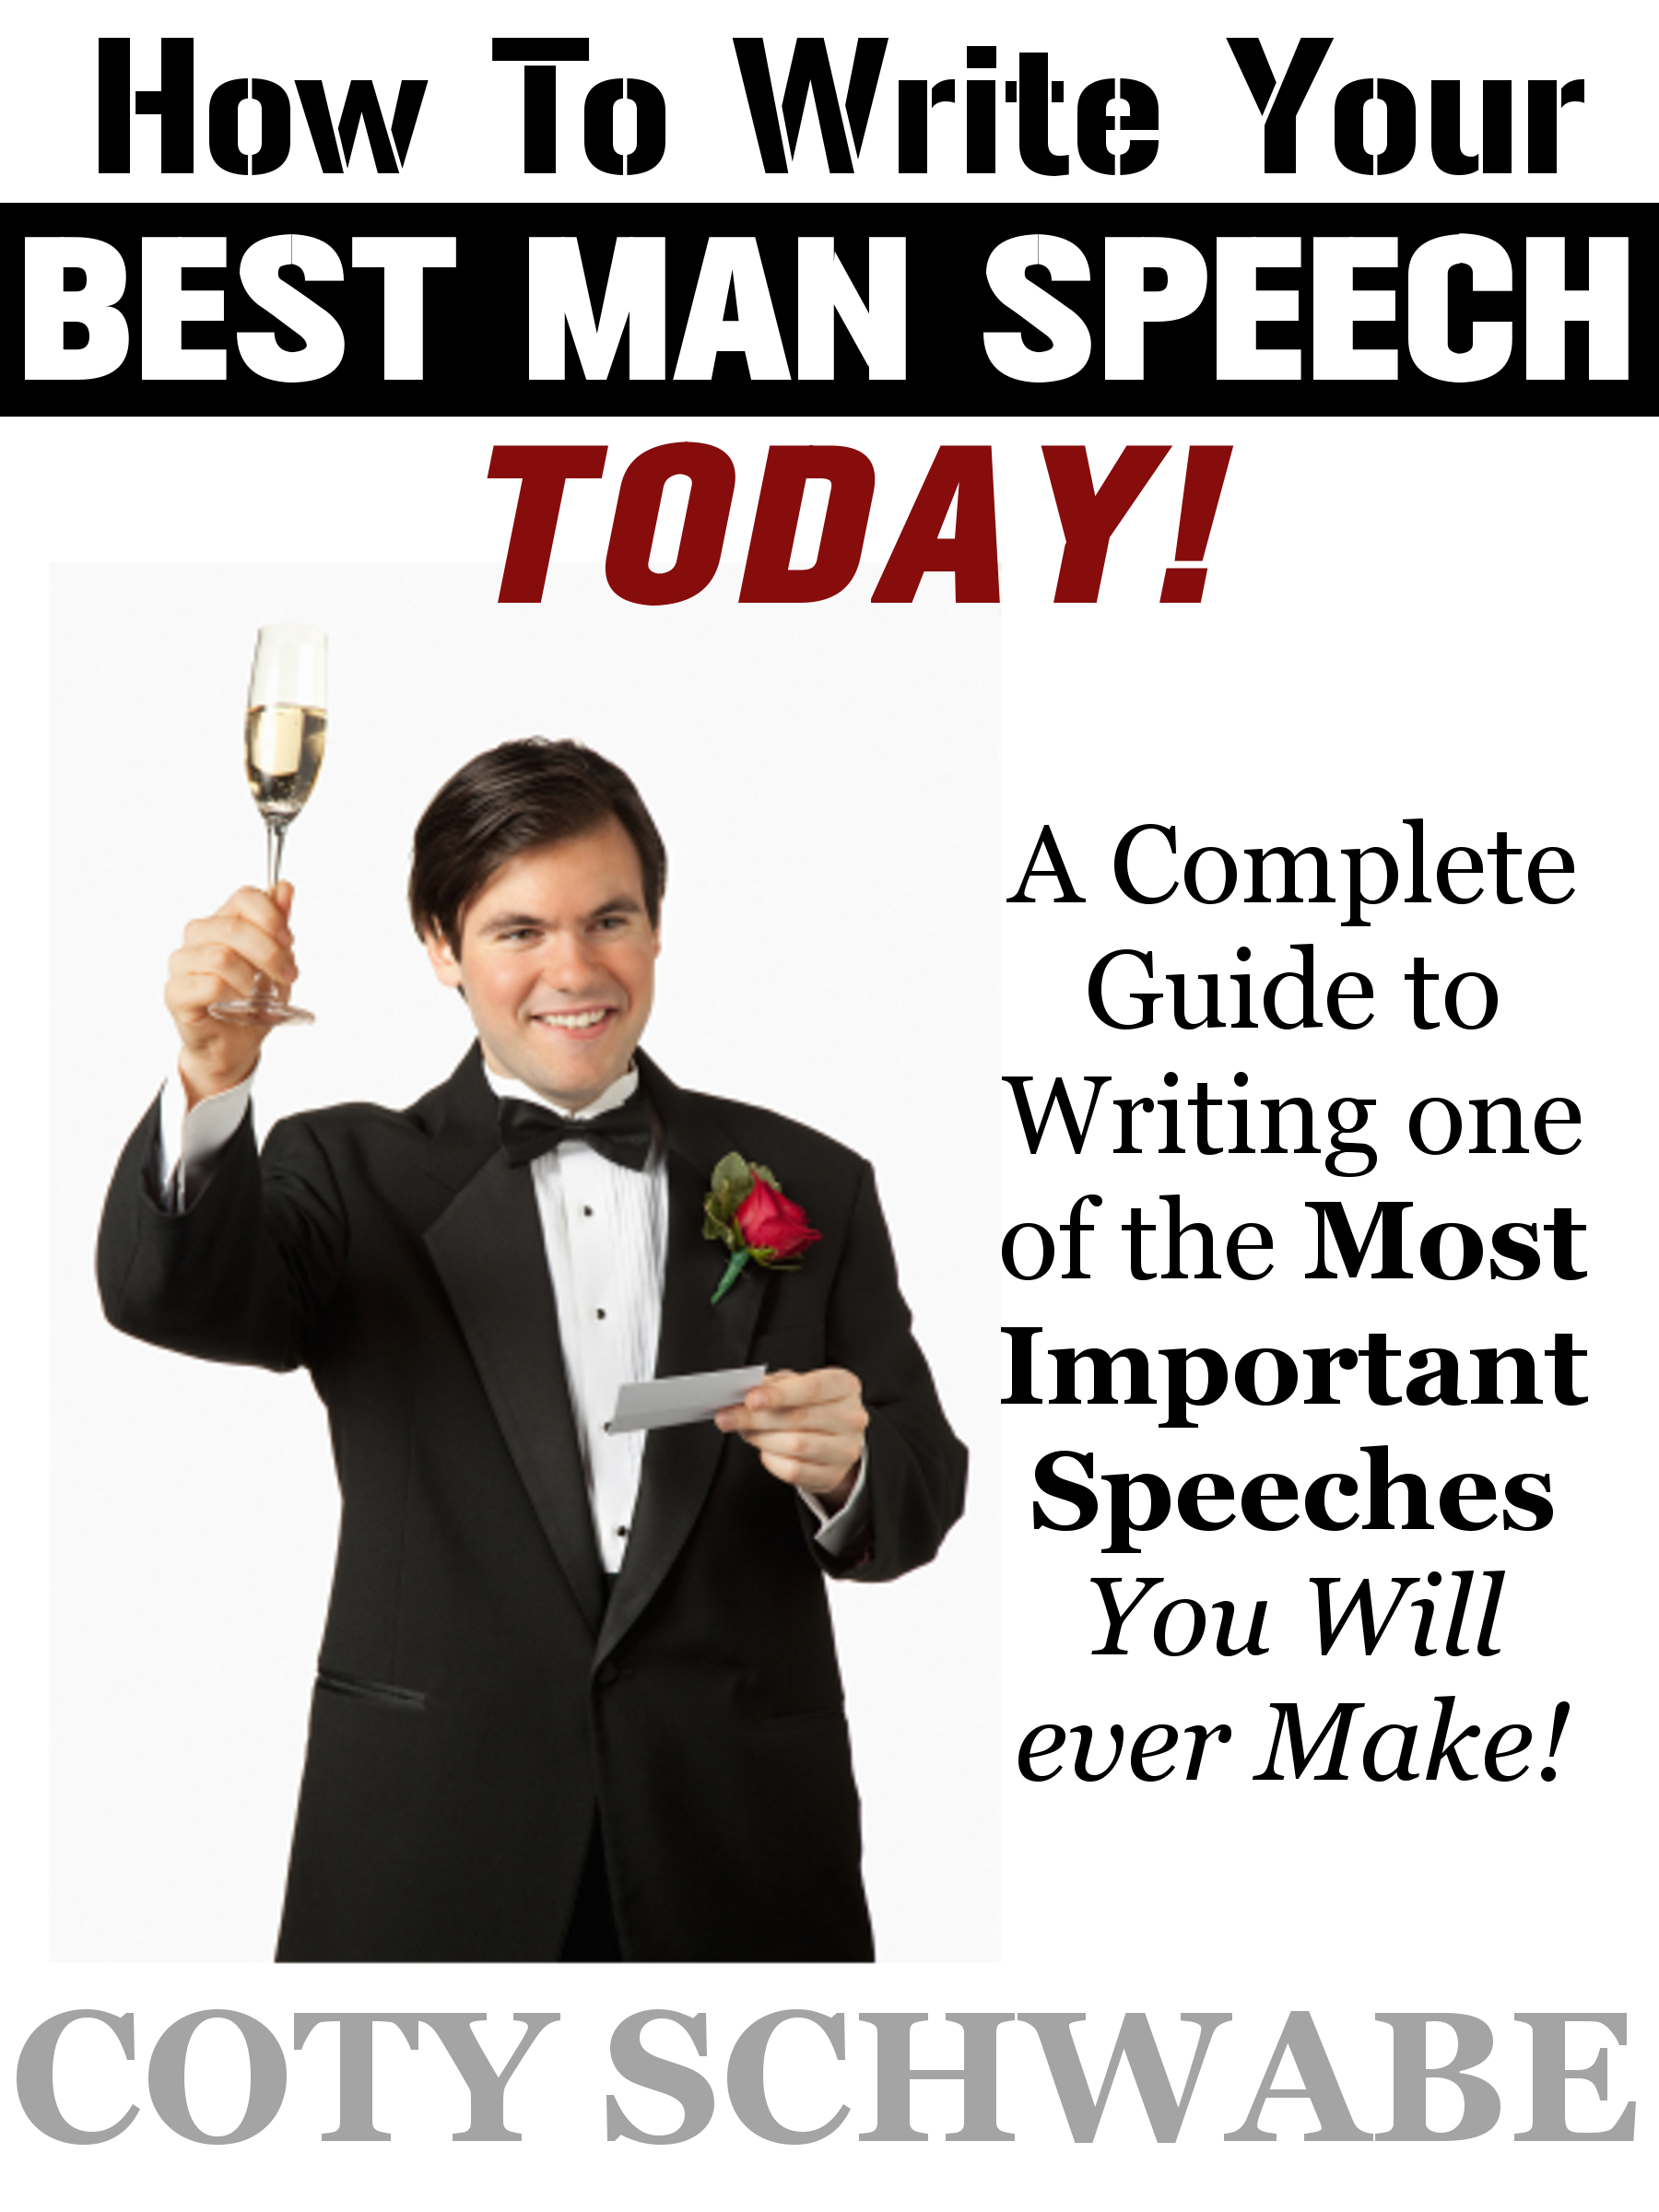 How to Write Your Best Man Speech Today!